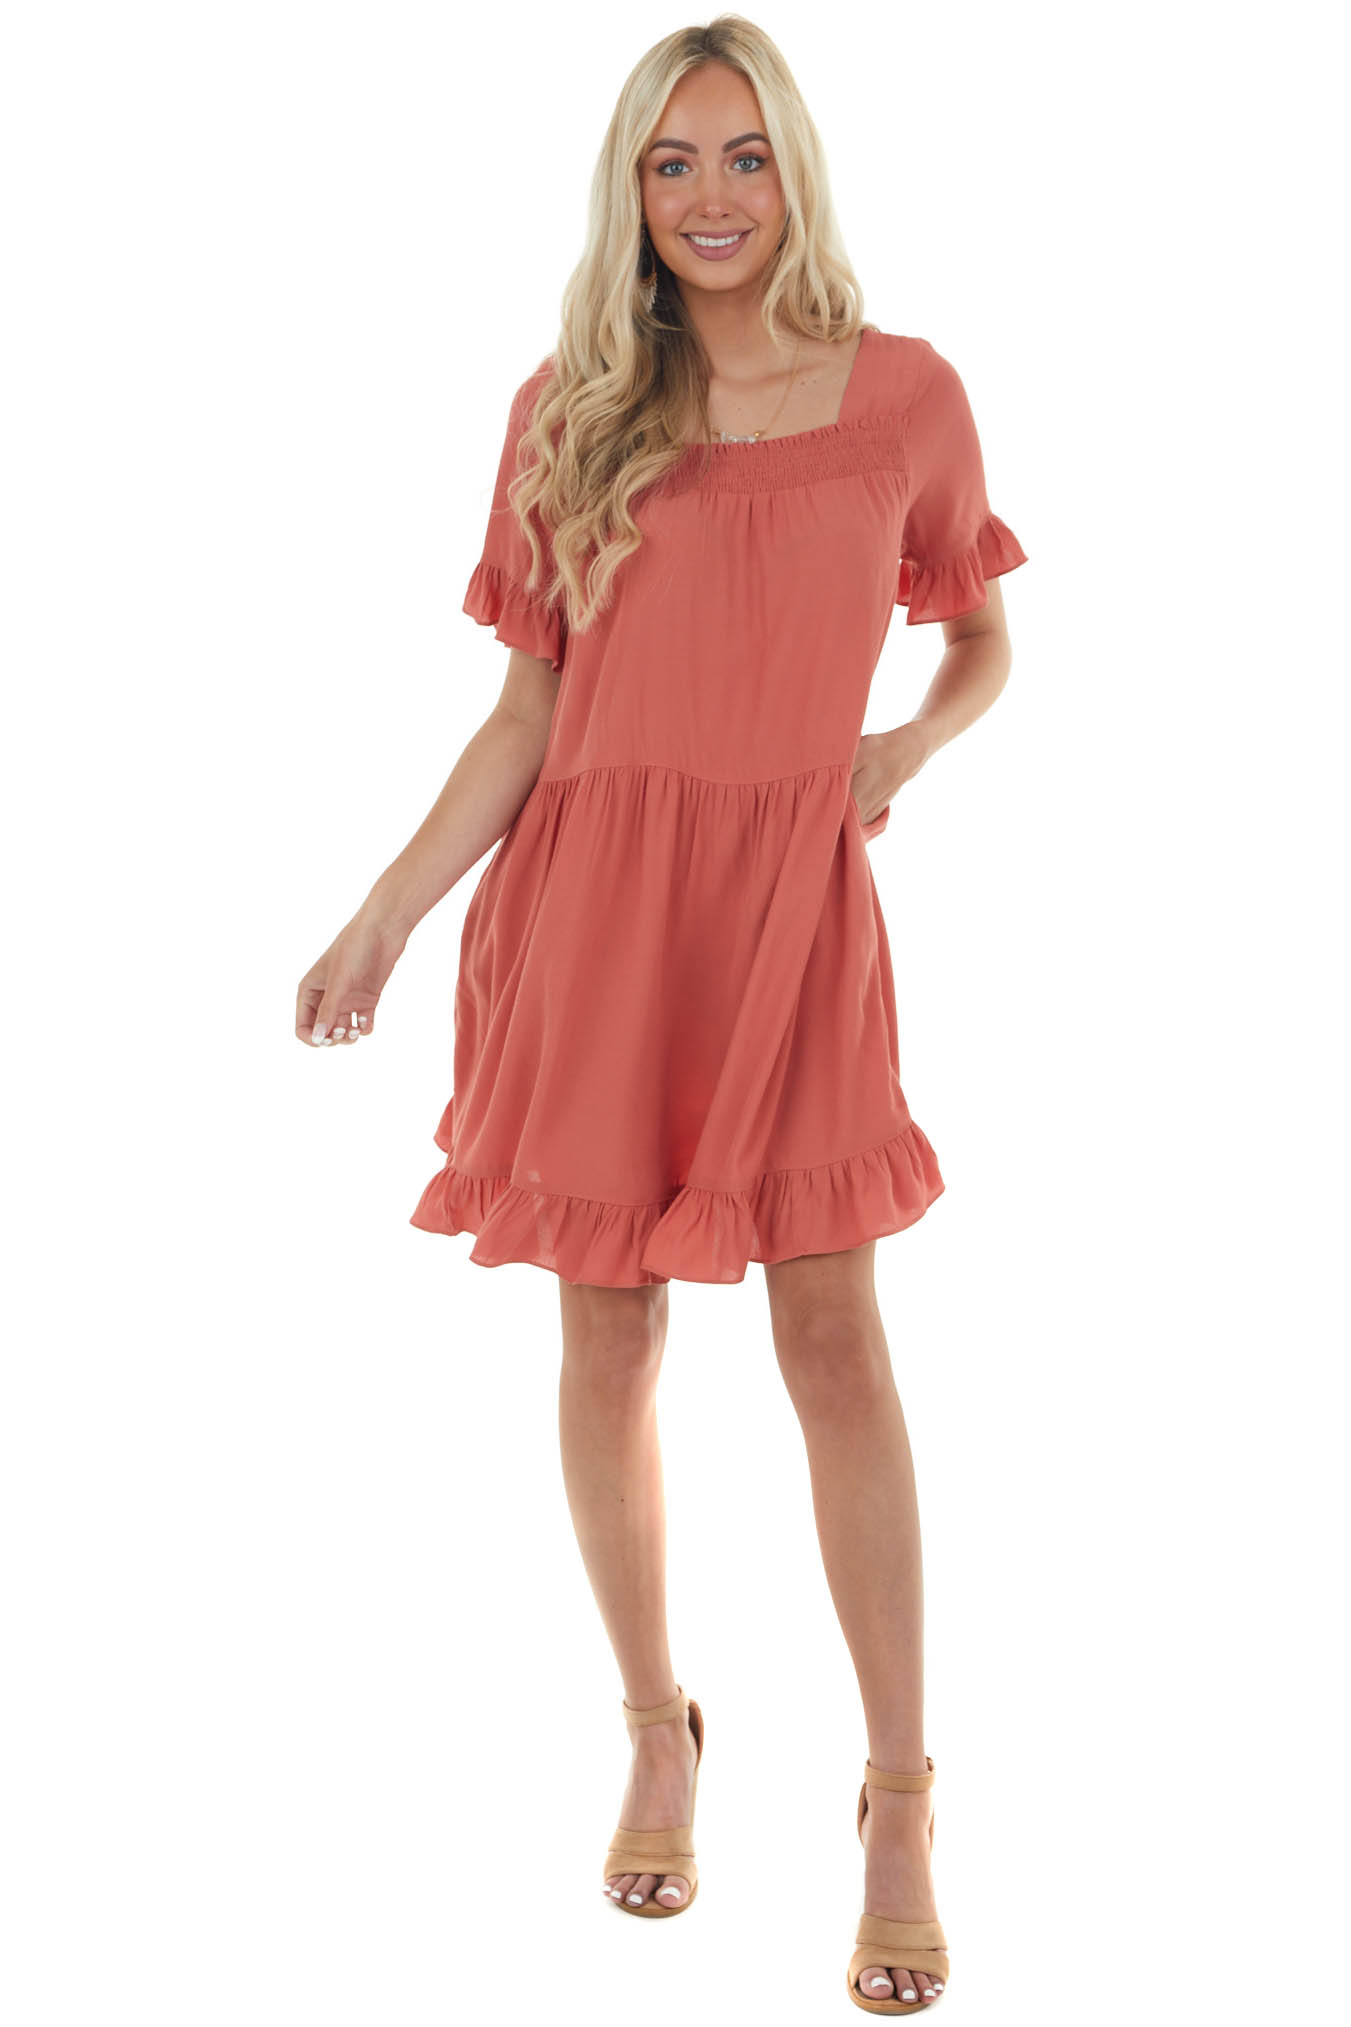 Terracotta Square Neck Tiered Short Dress